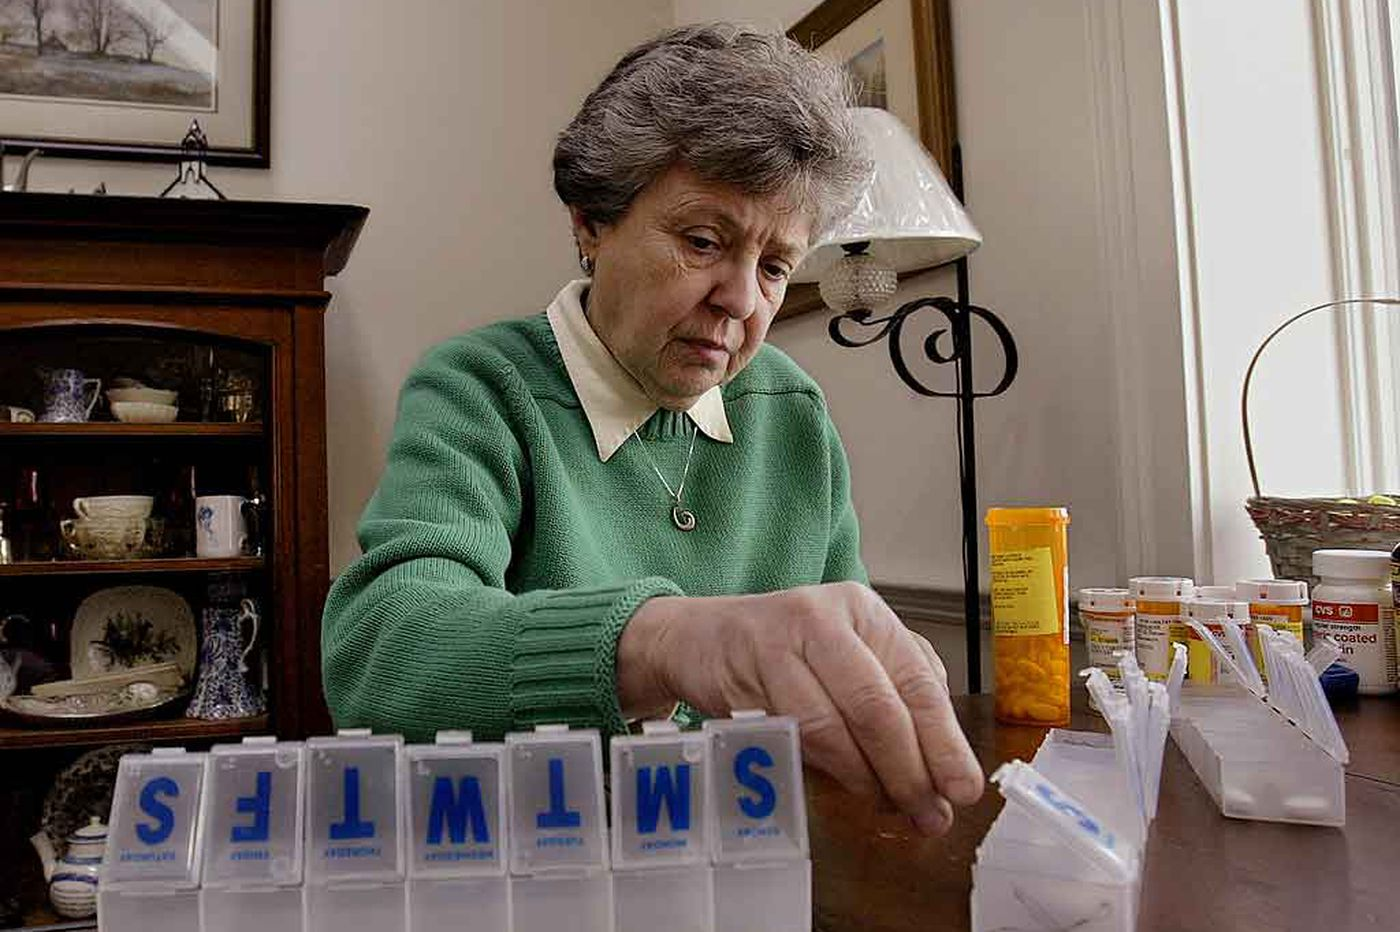 Which new diabetes medication is right for you? The choice can be daunting.